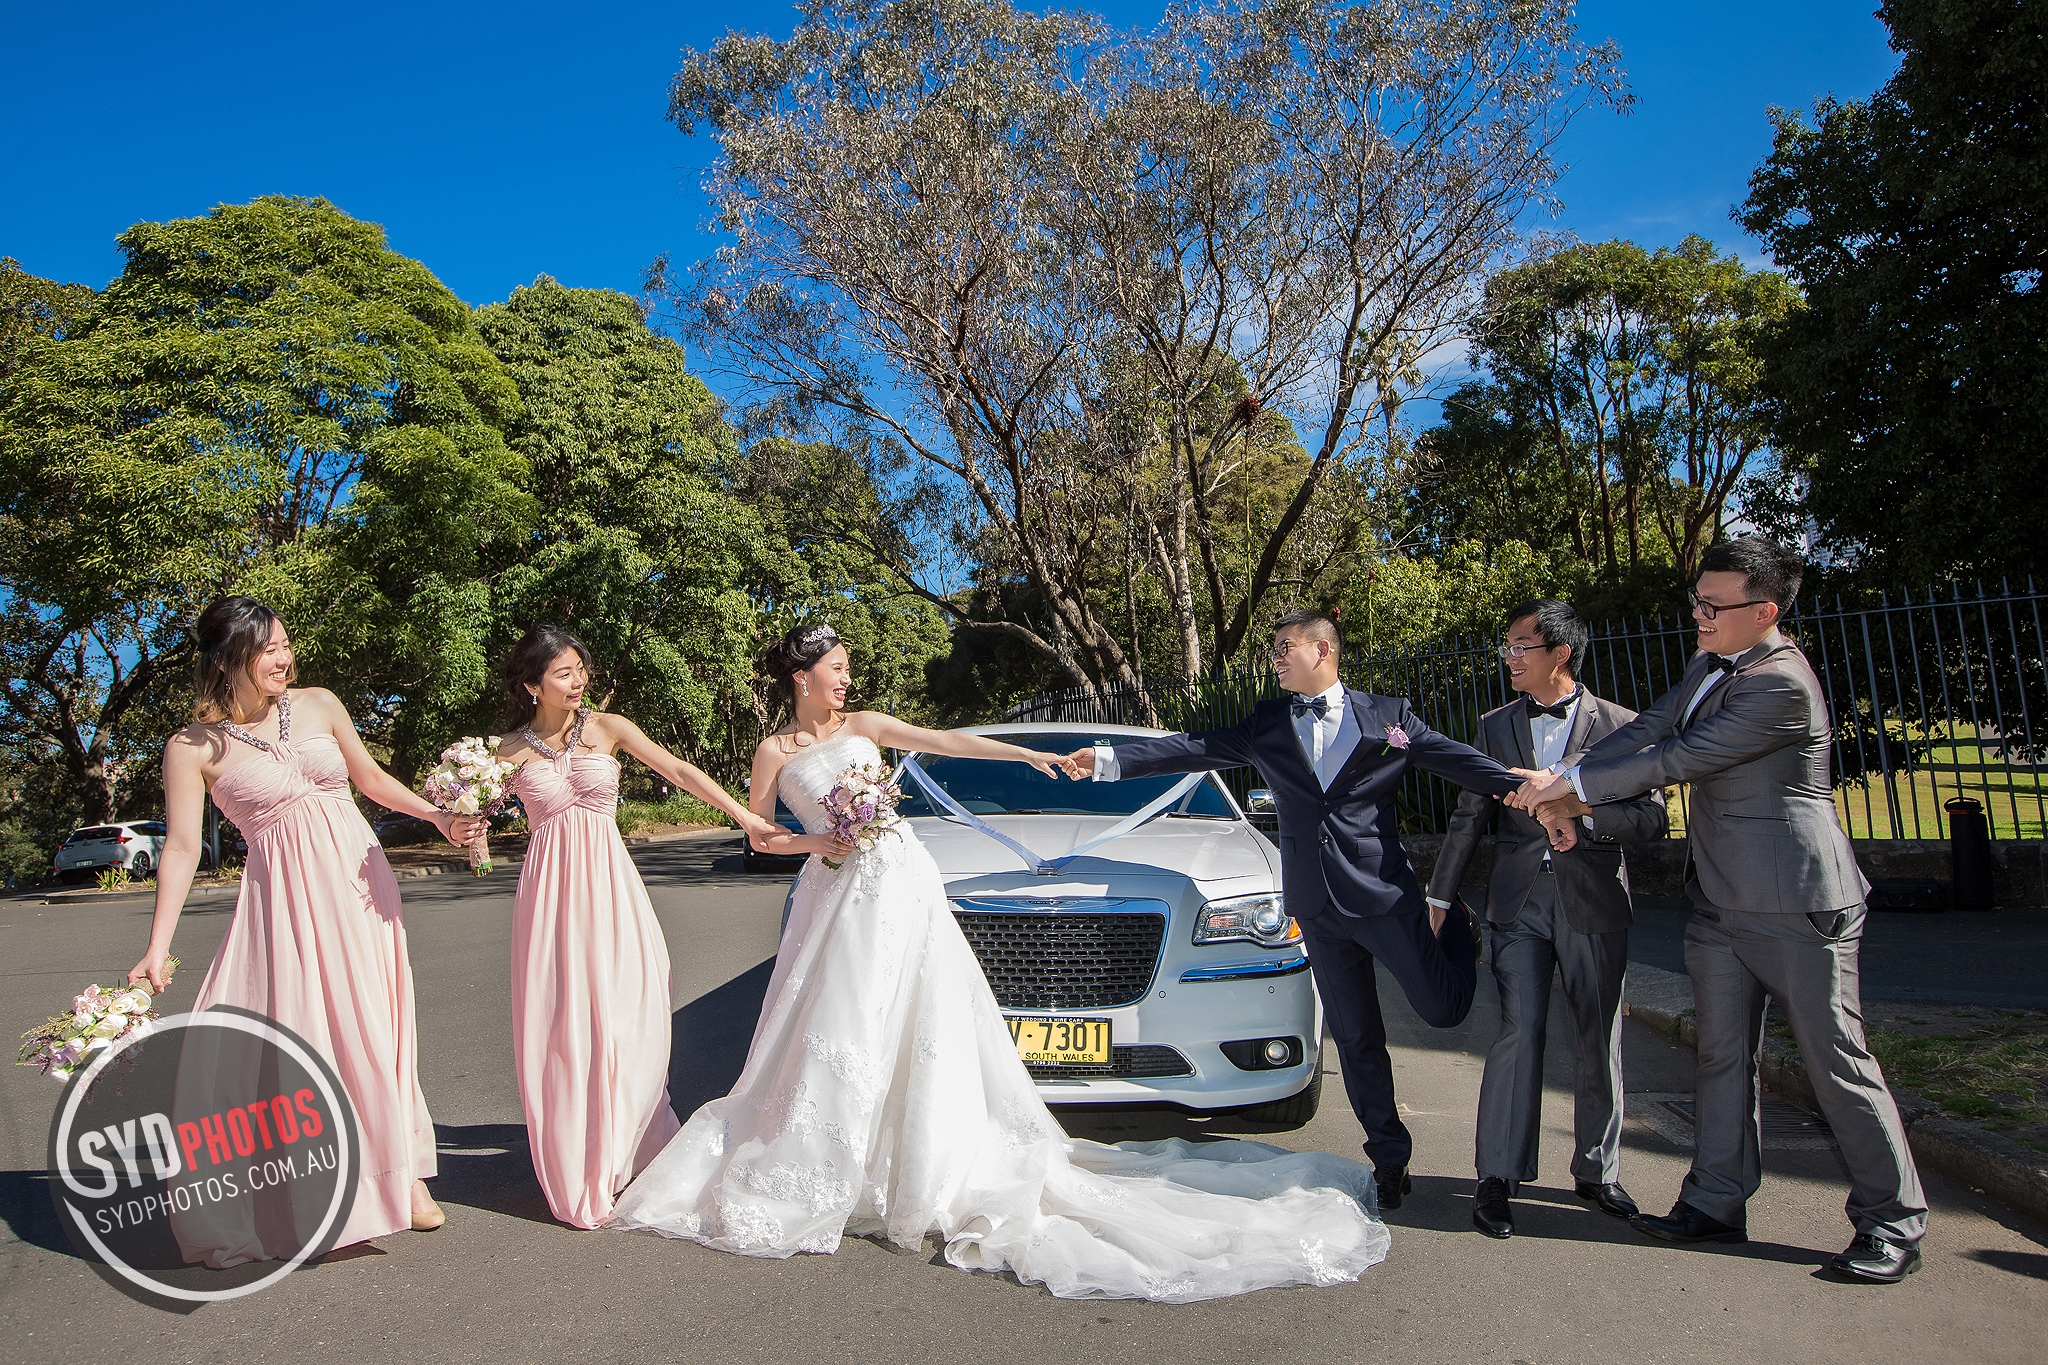 id-80174-20170903-324.jpg, By Photographer Sydphotos.wedding, Created on 11 Feb 2018, SYDPHOTOS Photography all rights reserved.